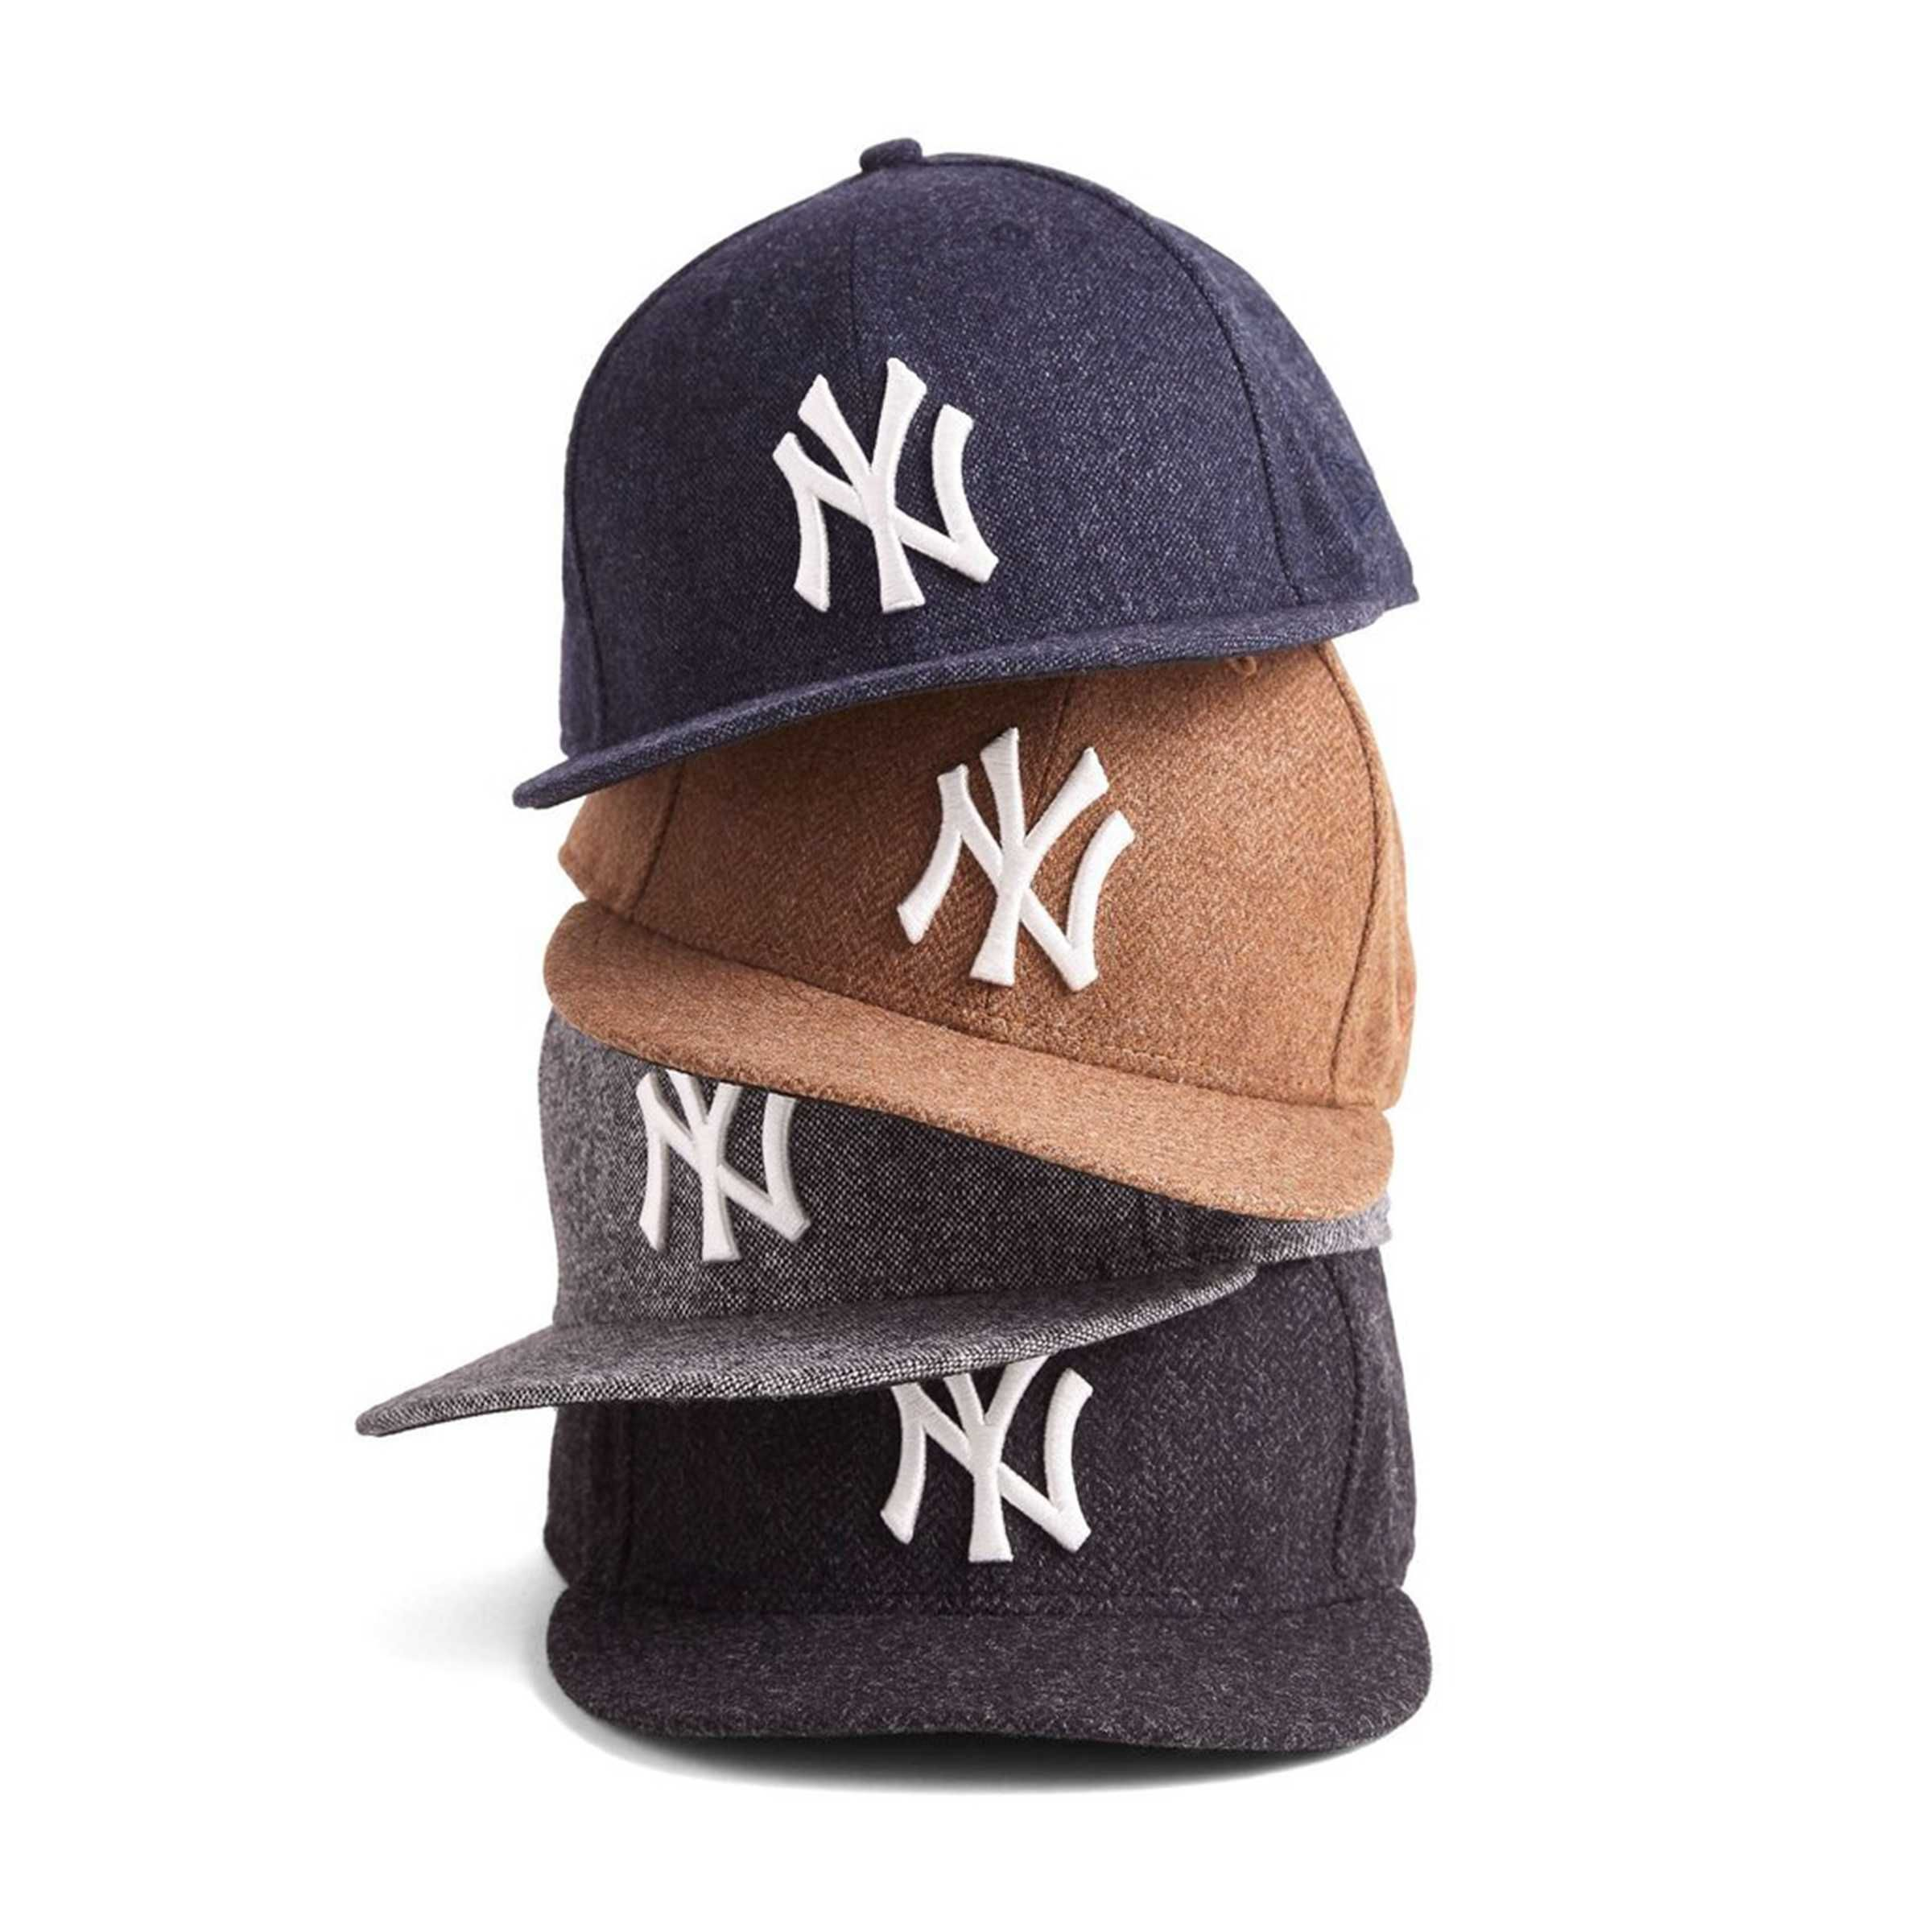 Todd Snyder Brings A Dose Of Menswear To The Yankees Cap Fashion Styles I Like Yankees Hat New Era Yankees New Era Cap